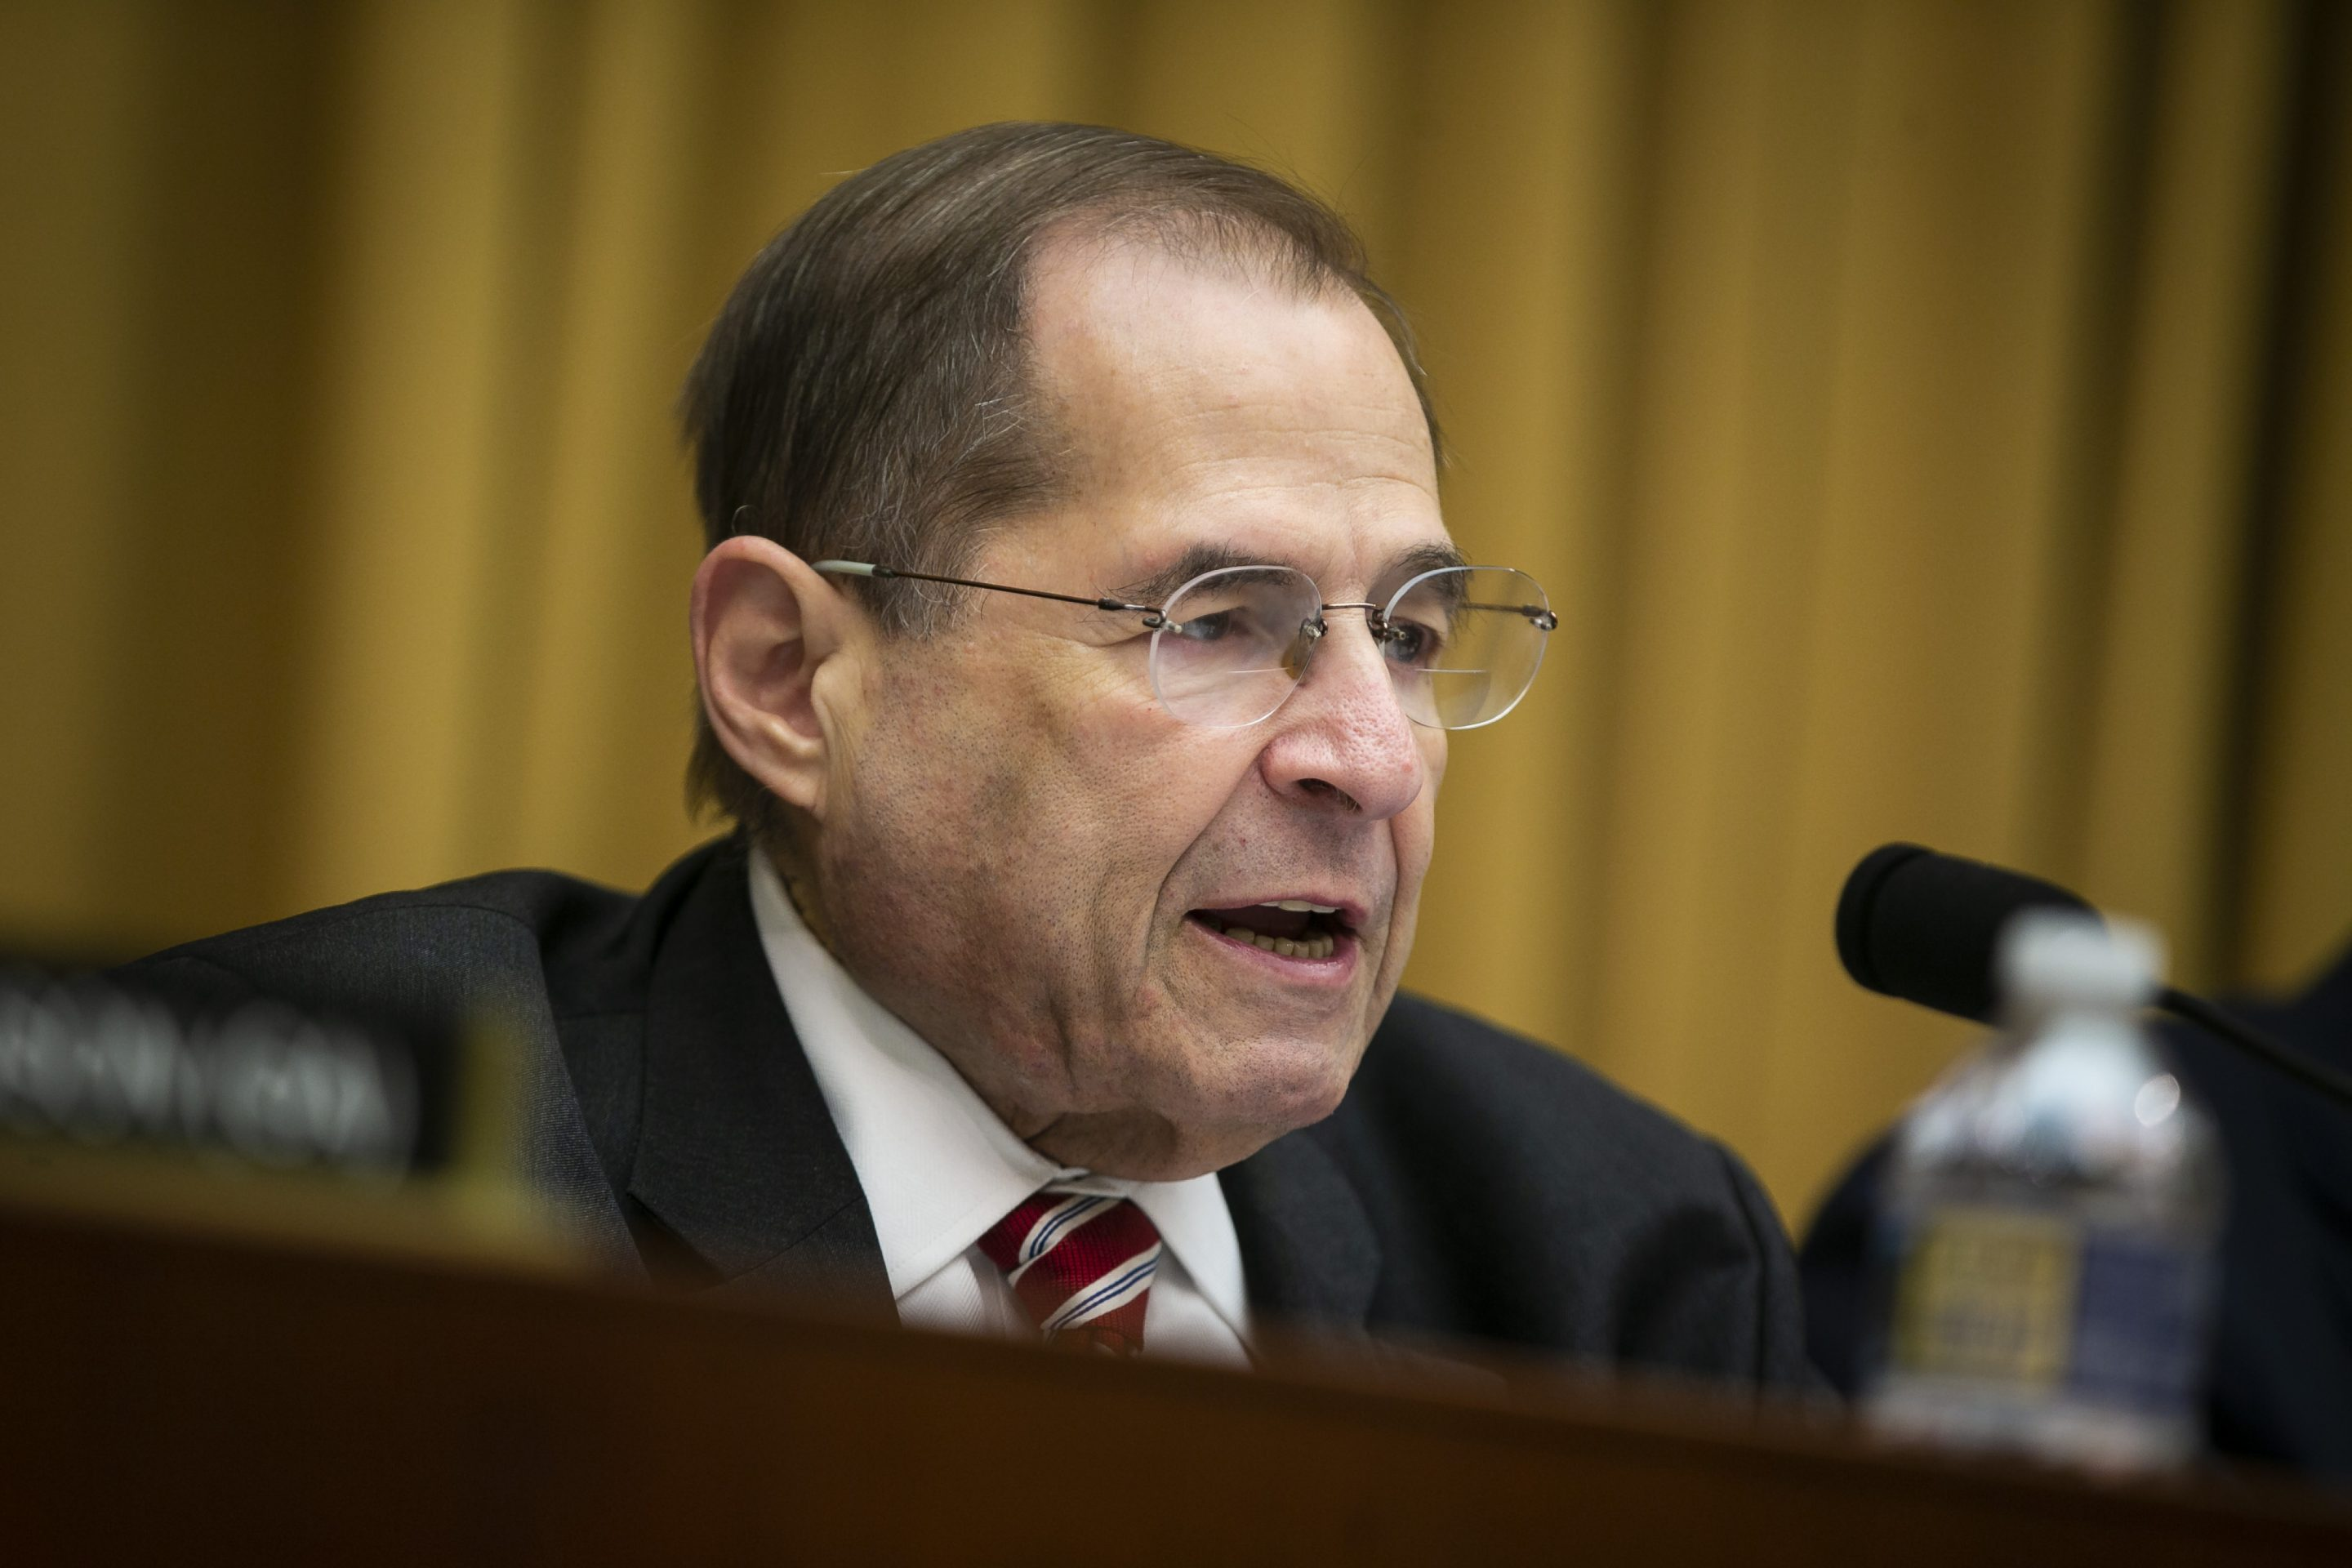 Representative Jerry Nadler, chairman of the House Judiciary Committee, speaks during a subcommittee hearing on antitrust on Tuesday, June 11, 2019. The subcommittee continued its investigation today, but absent is the legal standard of consumer harm as the trigger for government intervention.